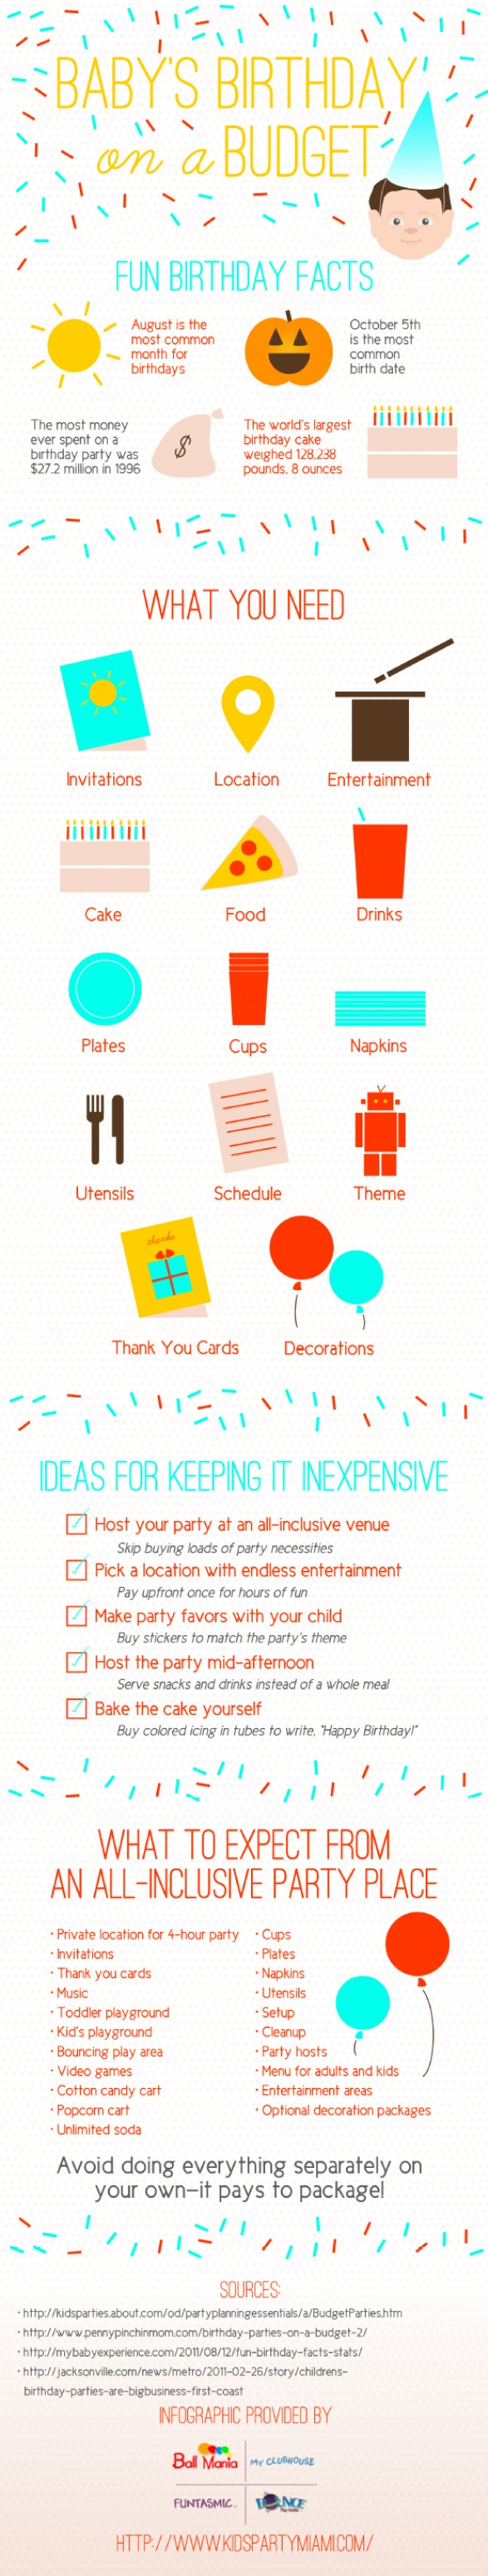 1000 images about birthday party infographics on pinterest on the shelf birthday cakes and. Black Bedroom Furniture Sets. Home Design Ideas